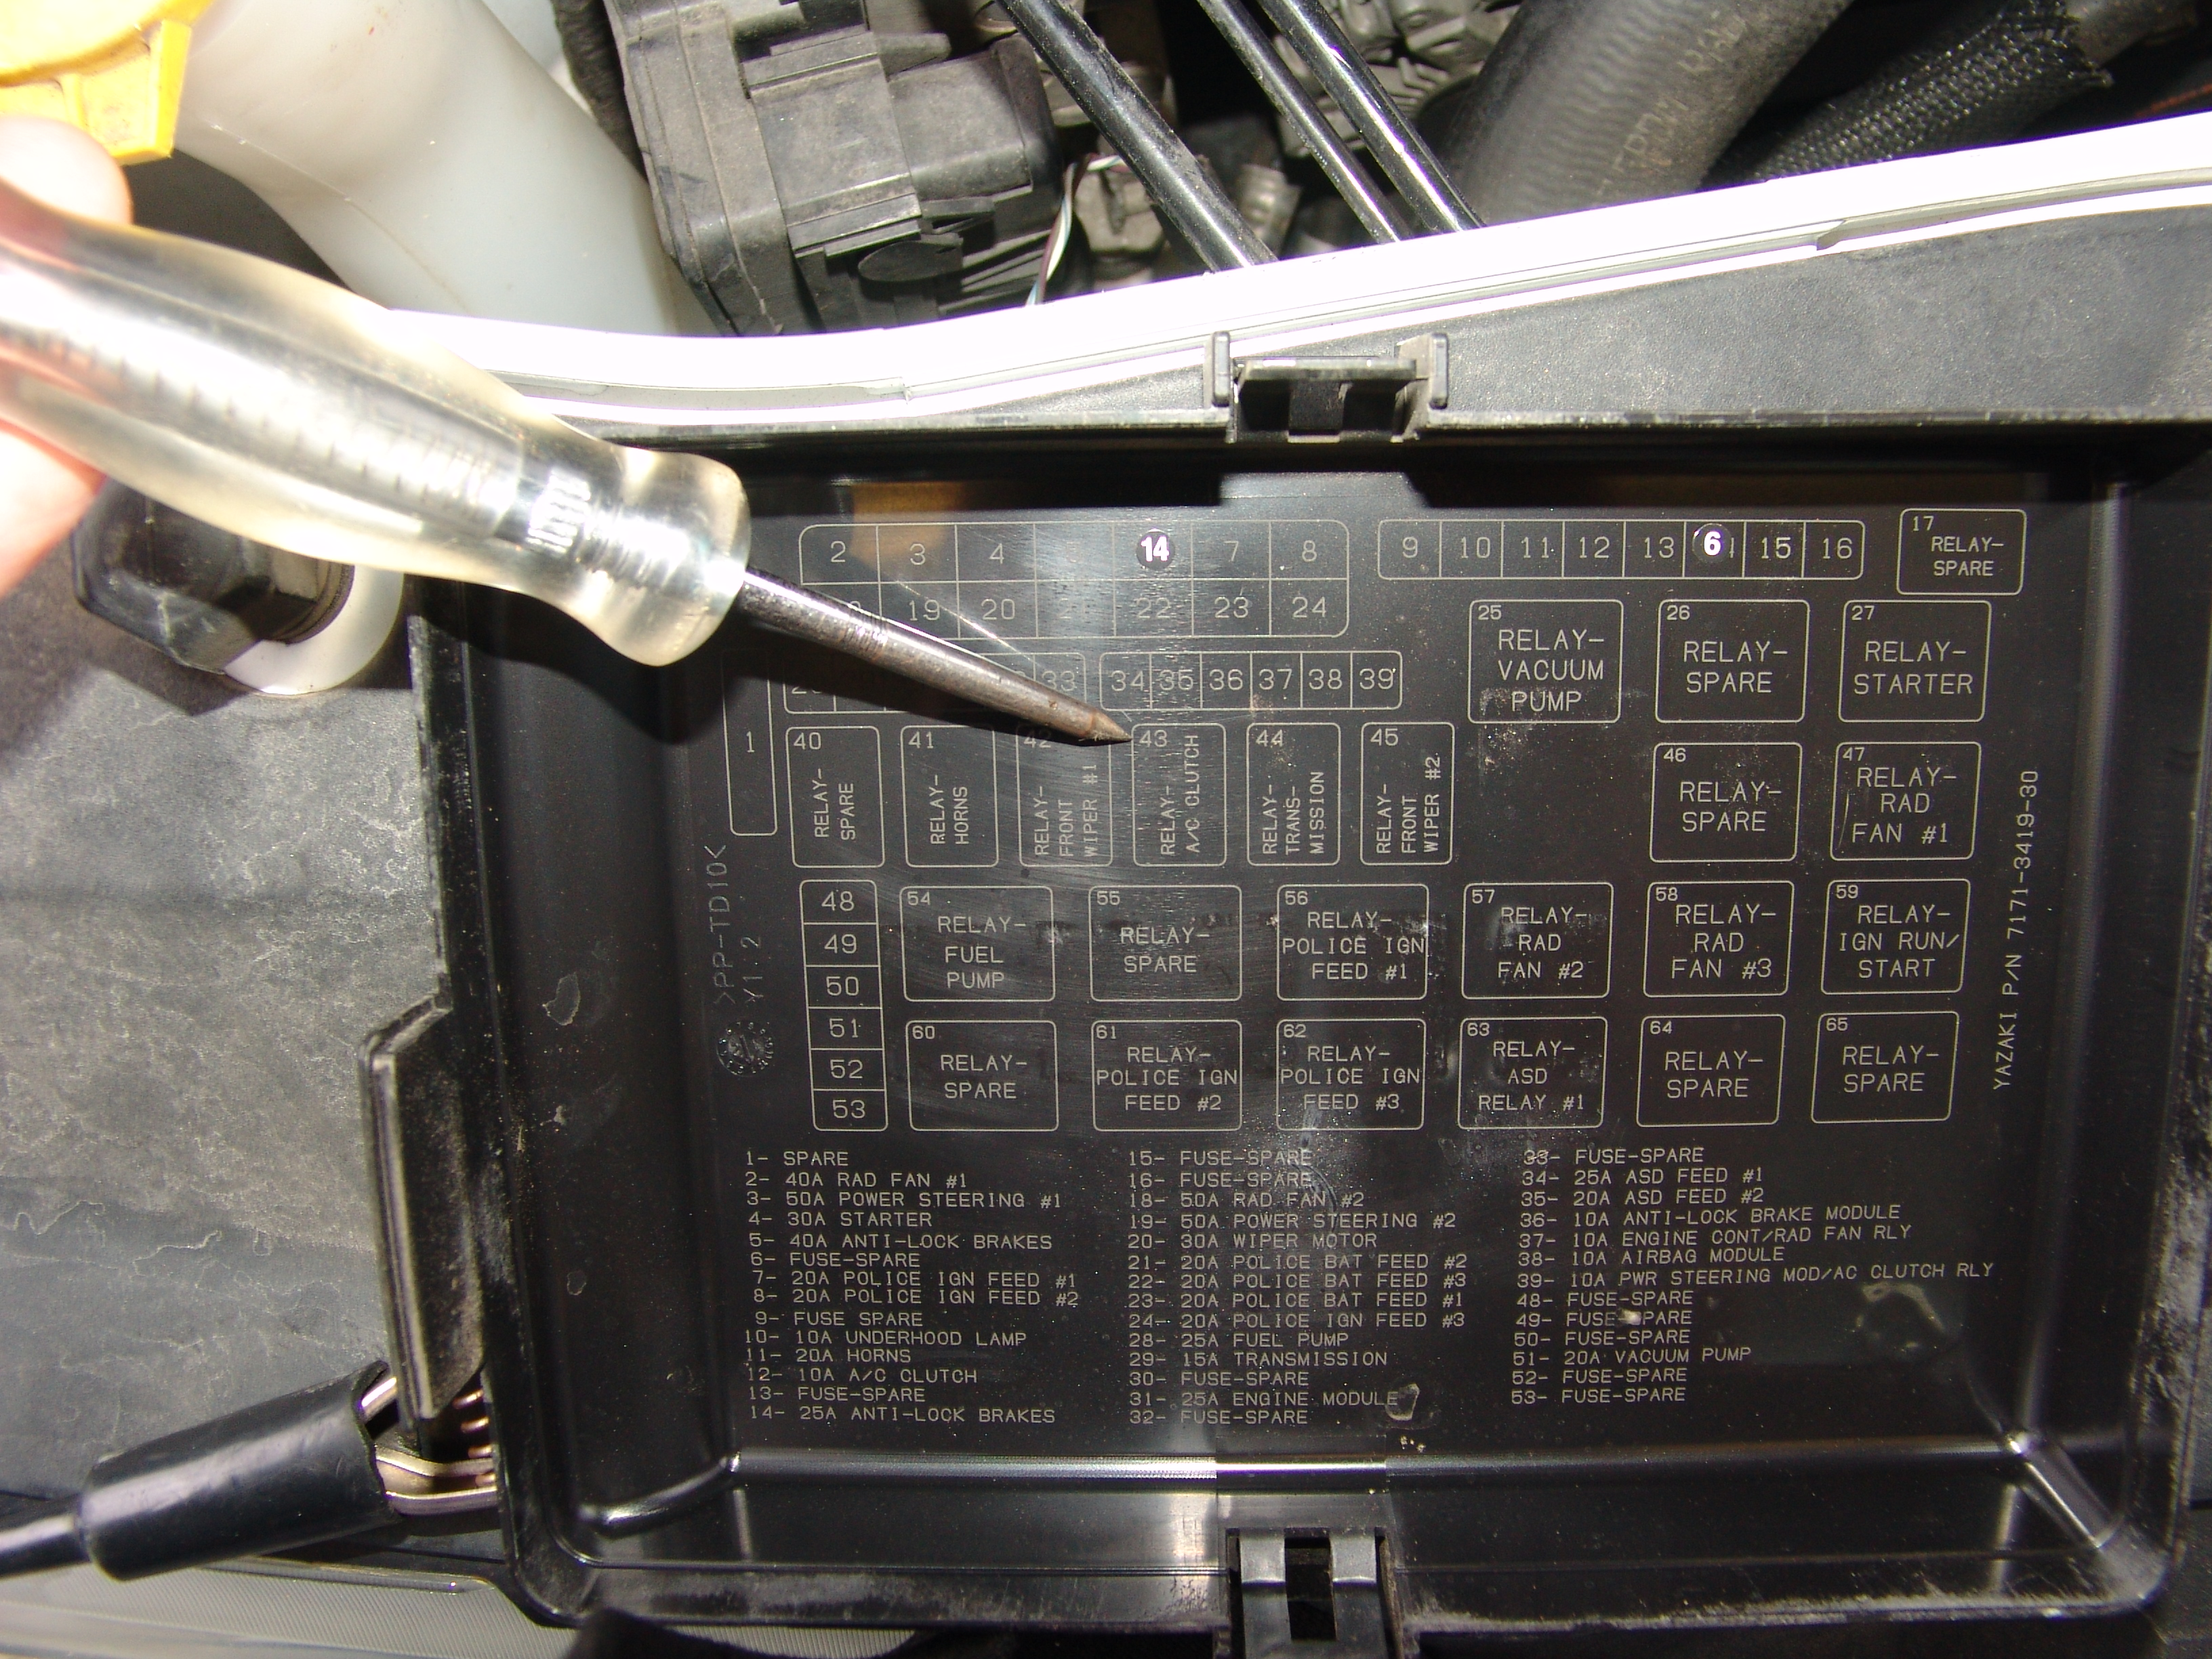 2013 Dodge Charger Fuse Diagram Schematic Diagrams 07 Police Wiring Box Ign Bat Electrical Work U2022 2008